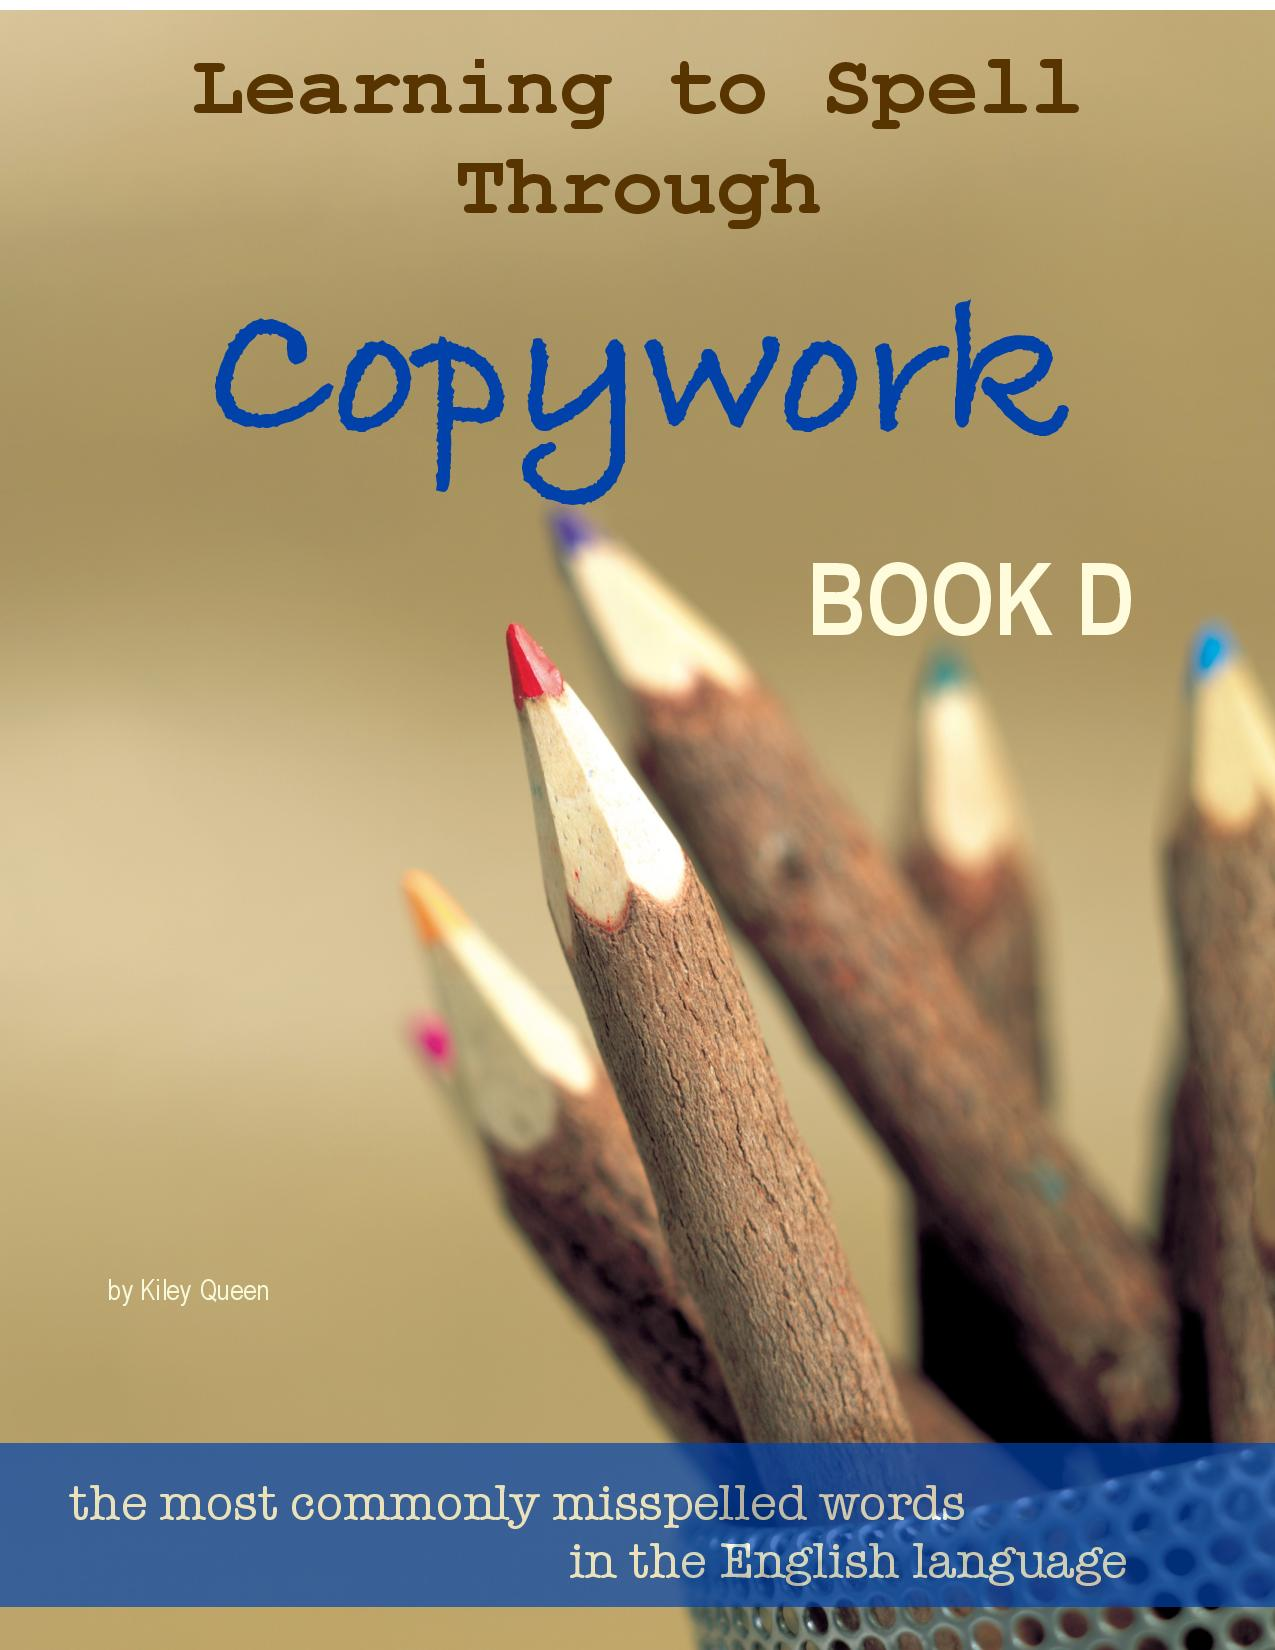 Learning to Spell Through Copywork Book D - Ebook